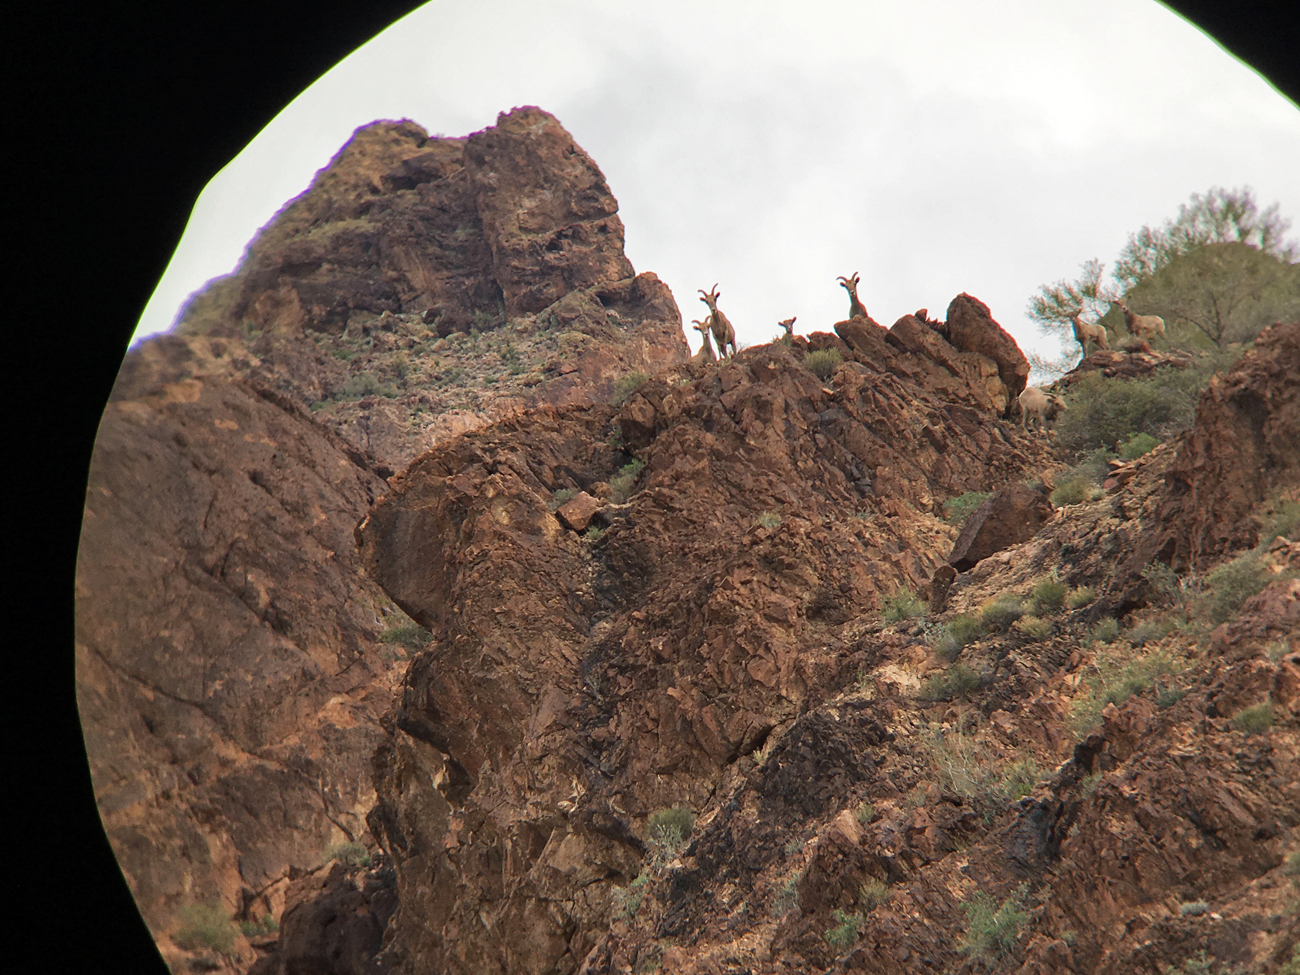 View through Michael's binoculars of the ewes and kids on top of the cliff at Kofa